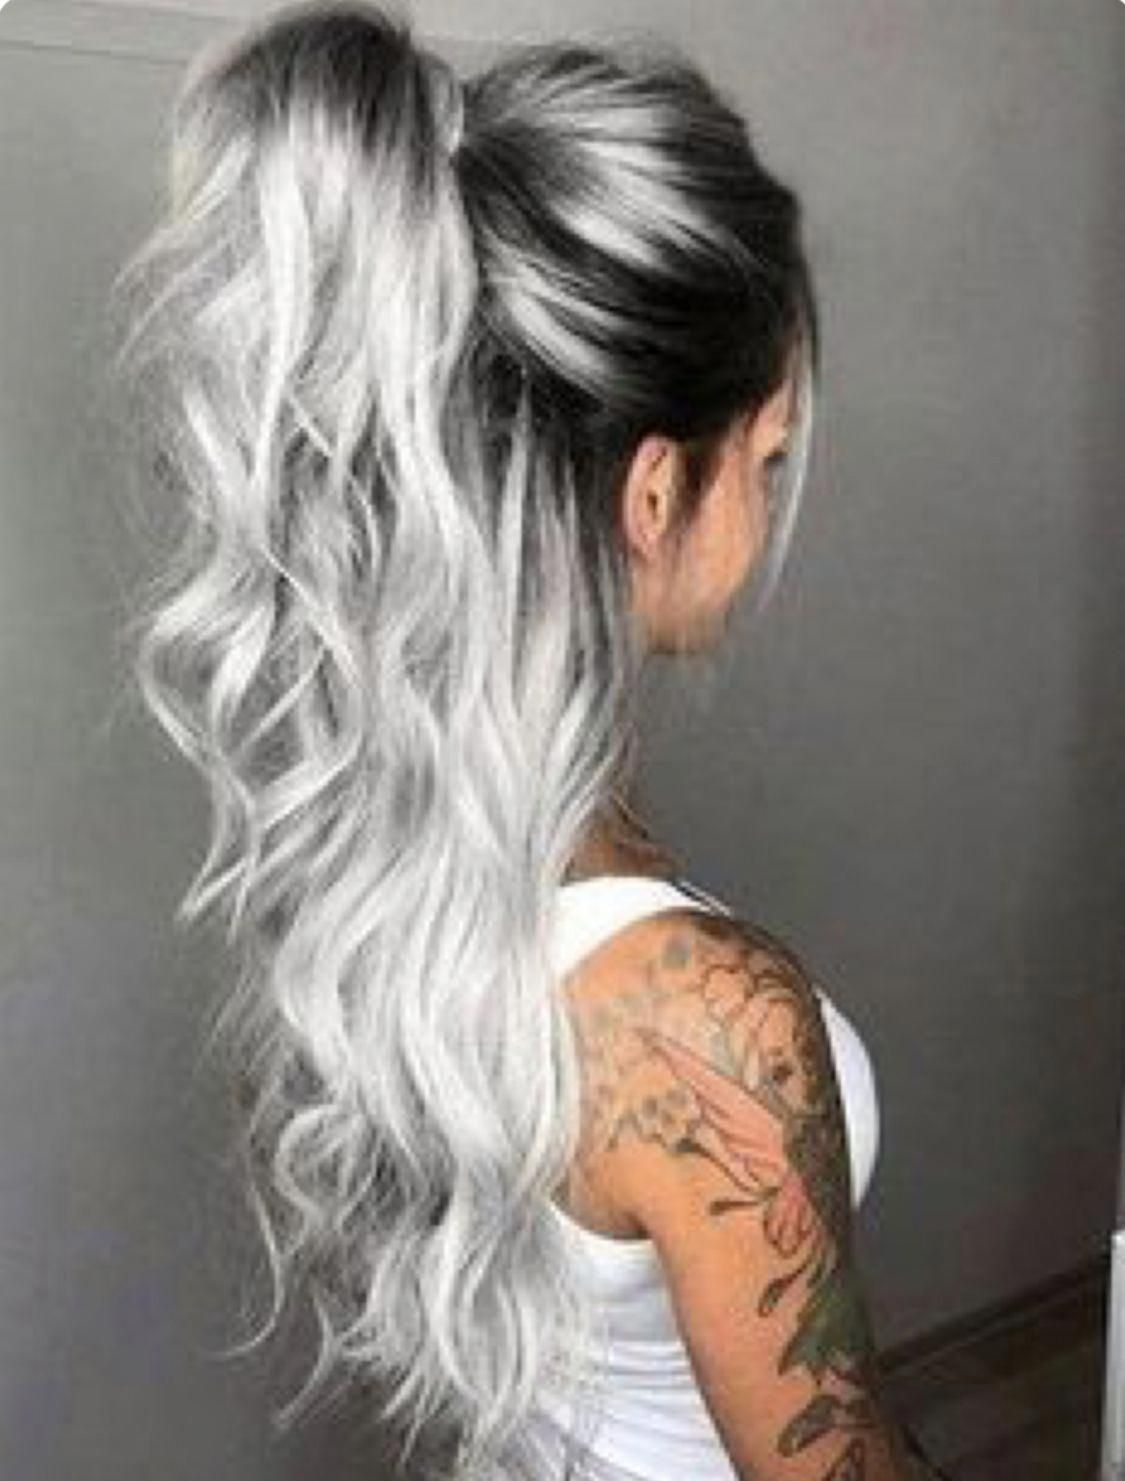 2020 New Gray Hair Wigs For African American Women Premature White Hair Short Grey Hair Over 50 Blending Gray With Highlights Premature Graying Beauty Supply Wigs